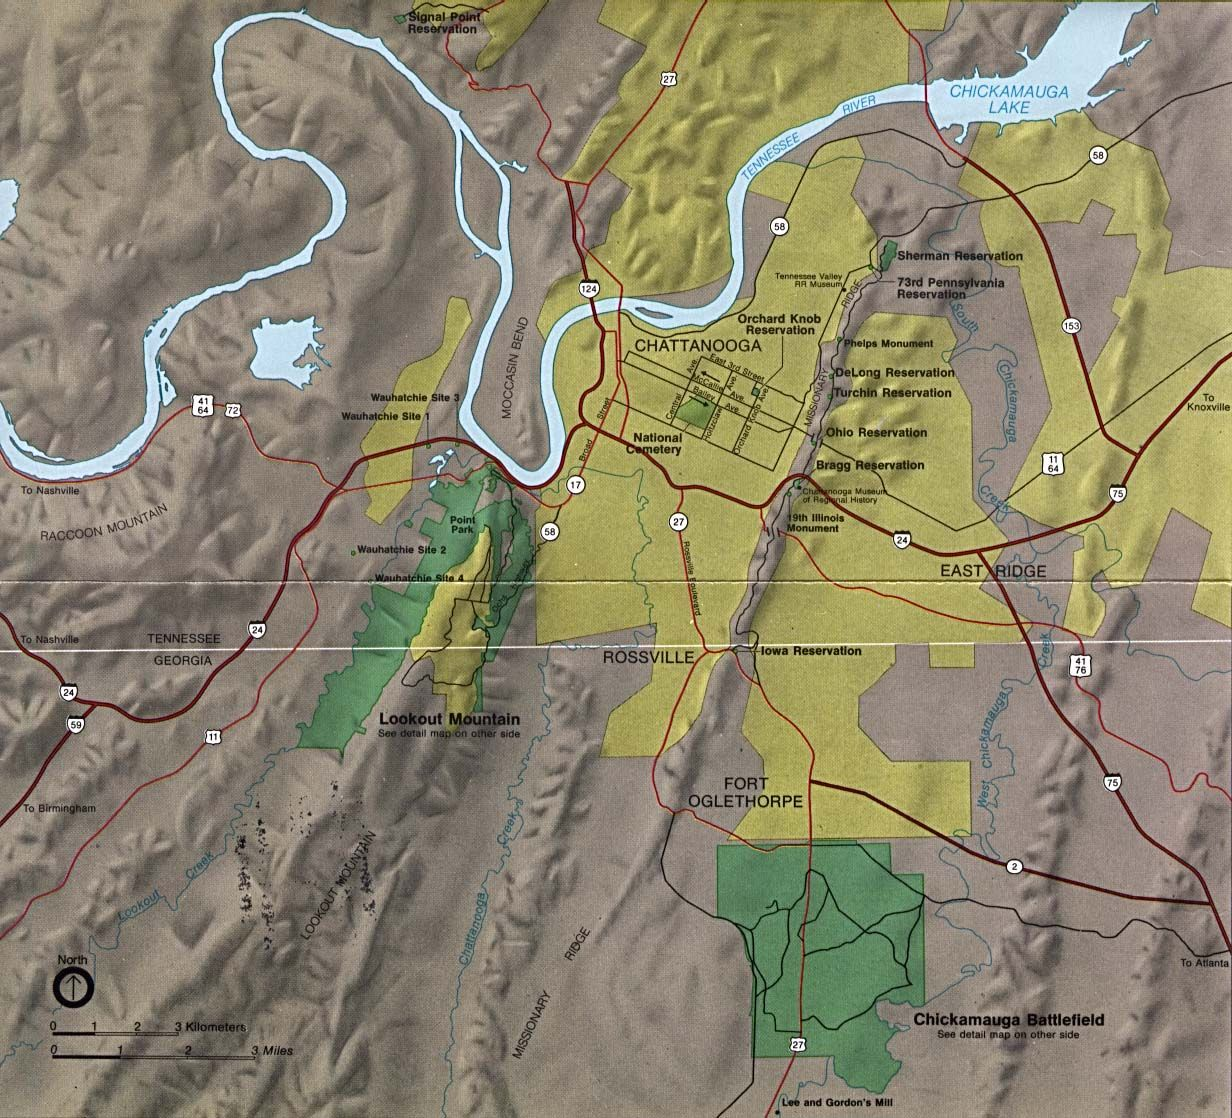 Maps of Area Map of Chickamauga and